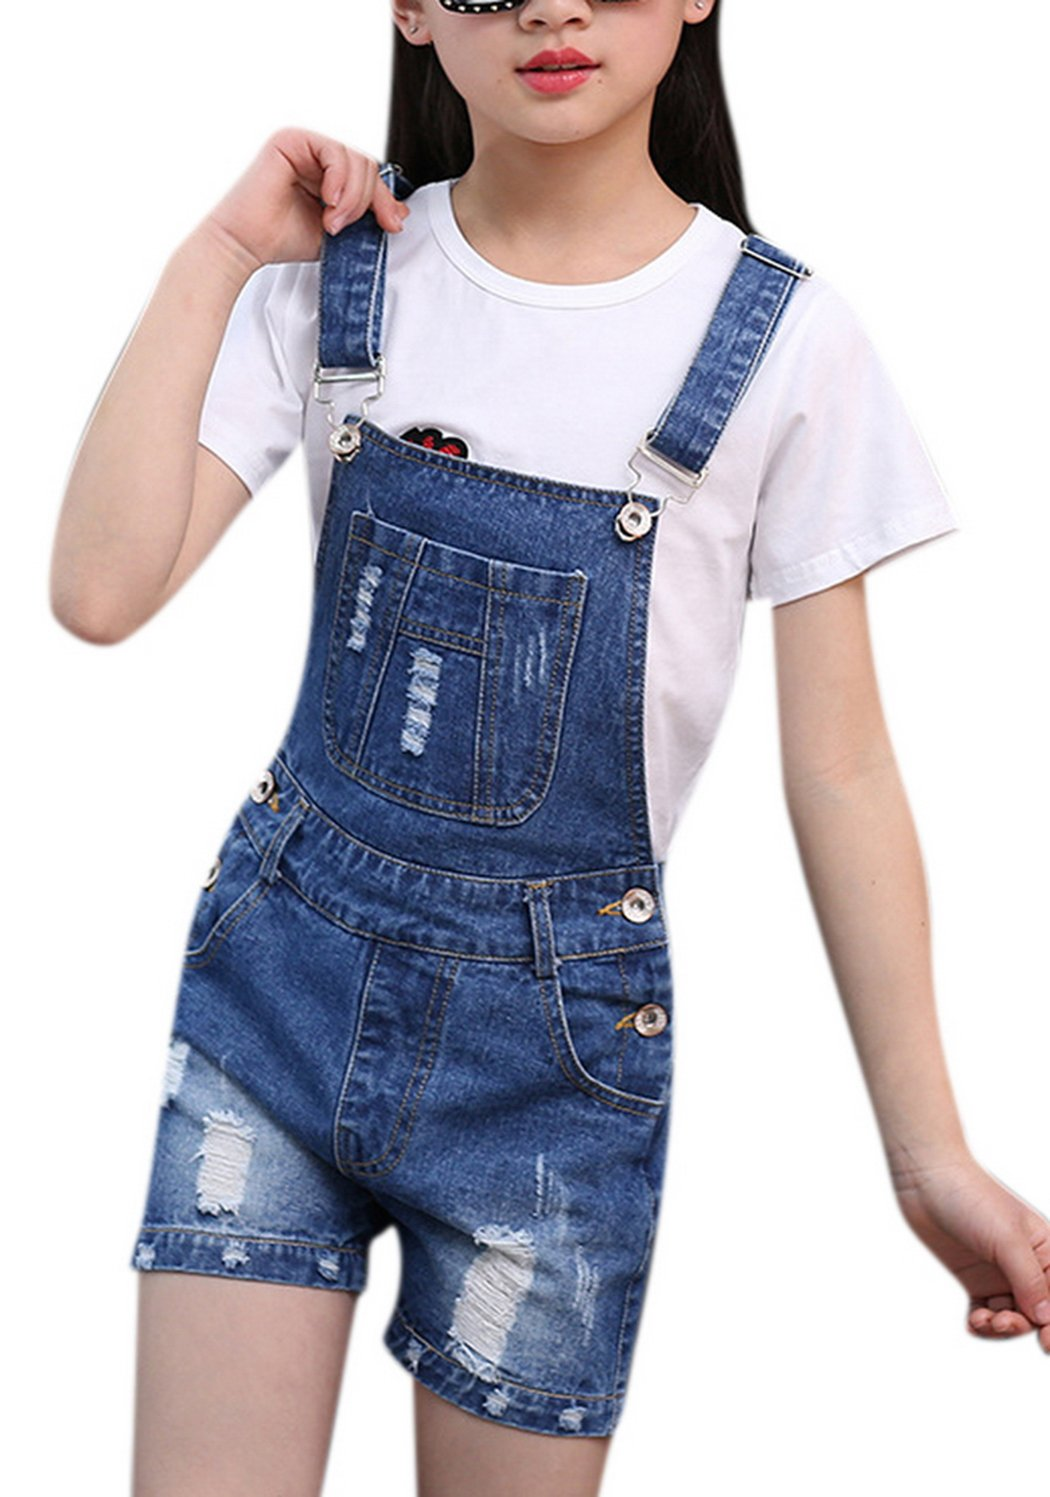 Big Girl's Denim Jumpsuit Boyfriend Jeans Cool Fashion Denim Romper Shortalls 10 Blue